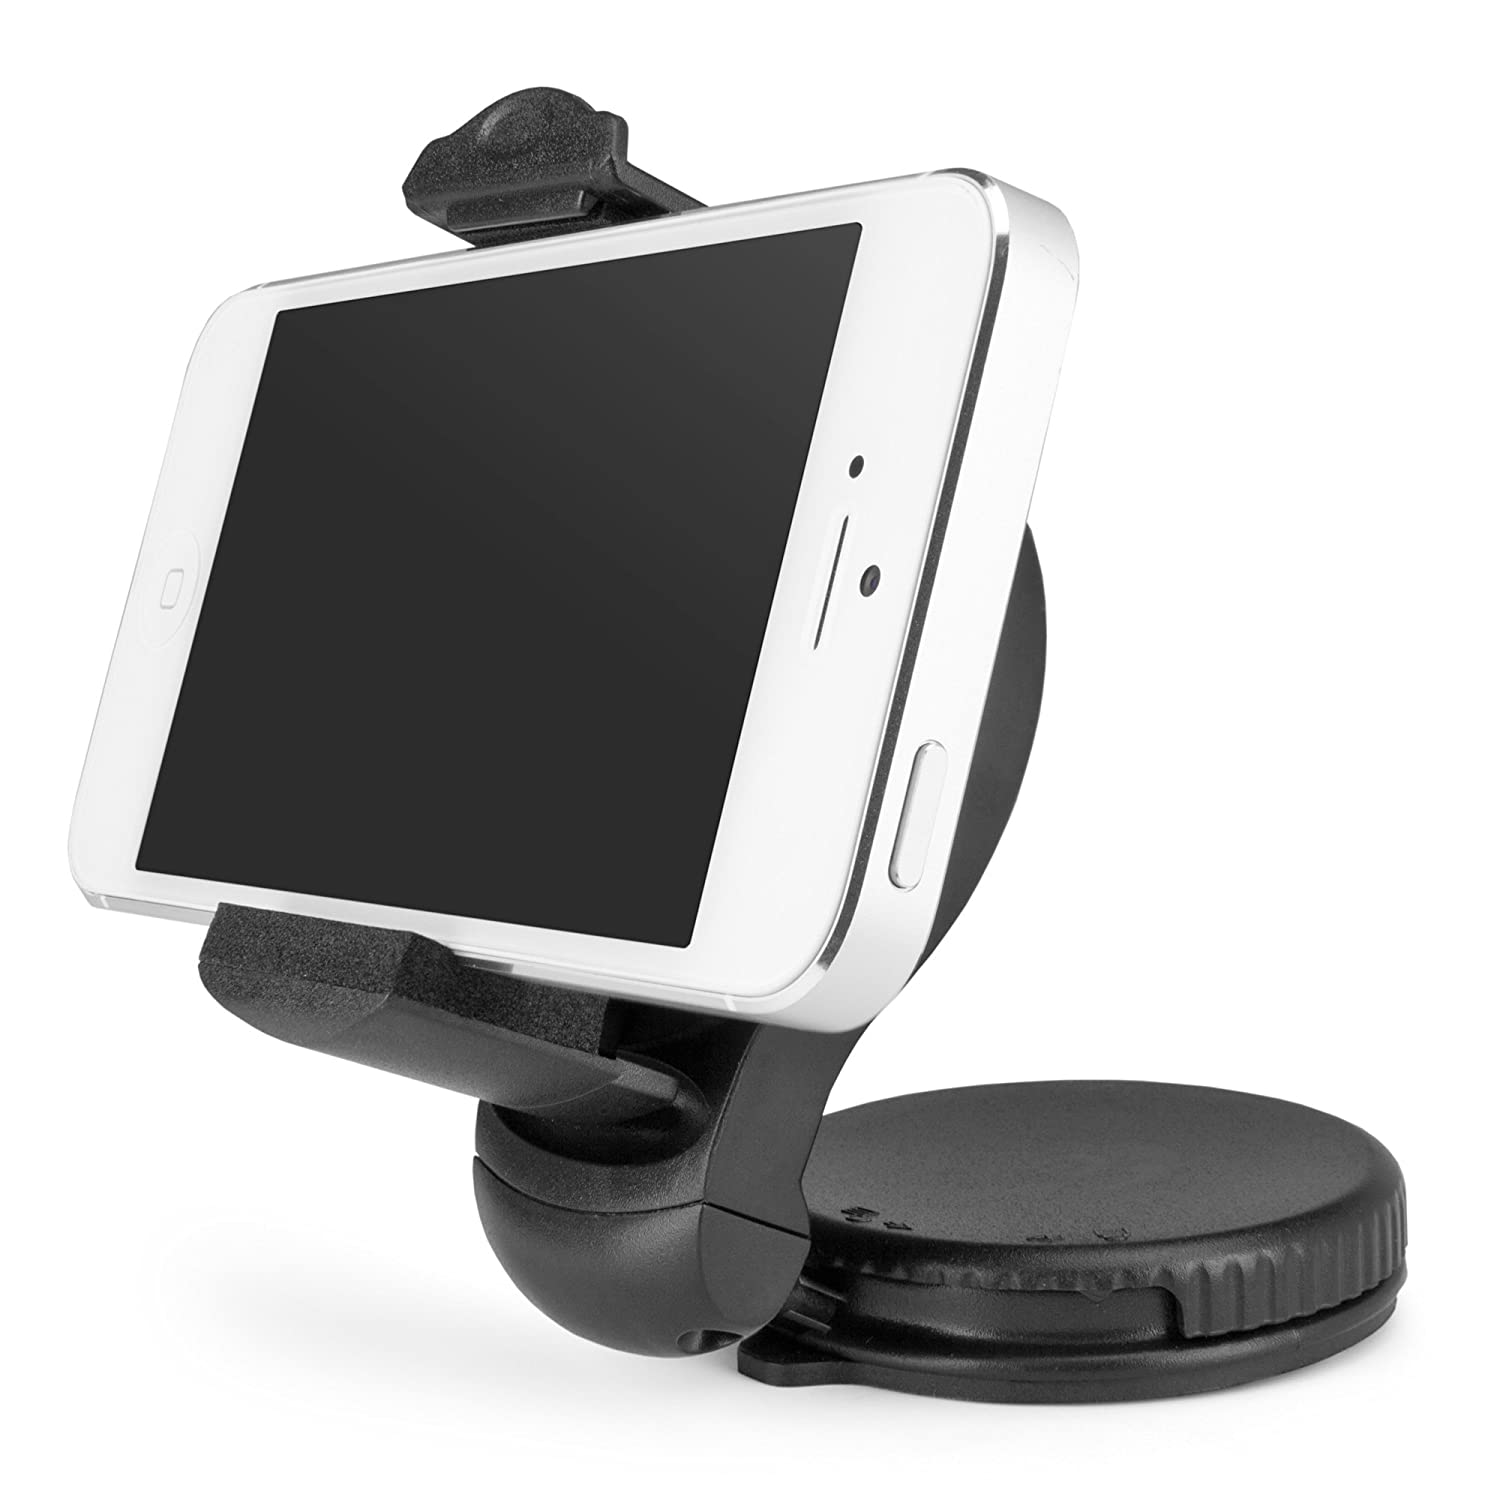 BoxWave TinyMount Suction Mounted Car Mount with Adjustable Clamp for Sony Xperia Z5 Premium BoxWave Corporation Sony Xperia Z5 Premium Stand and Mount